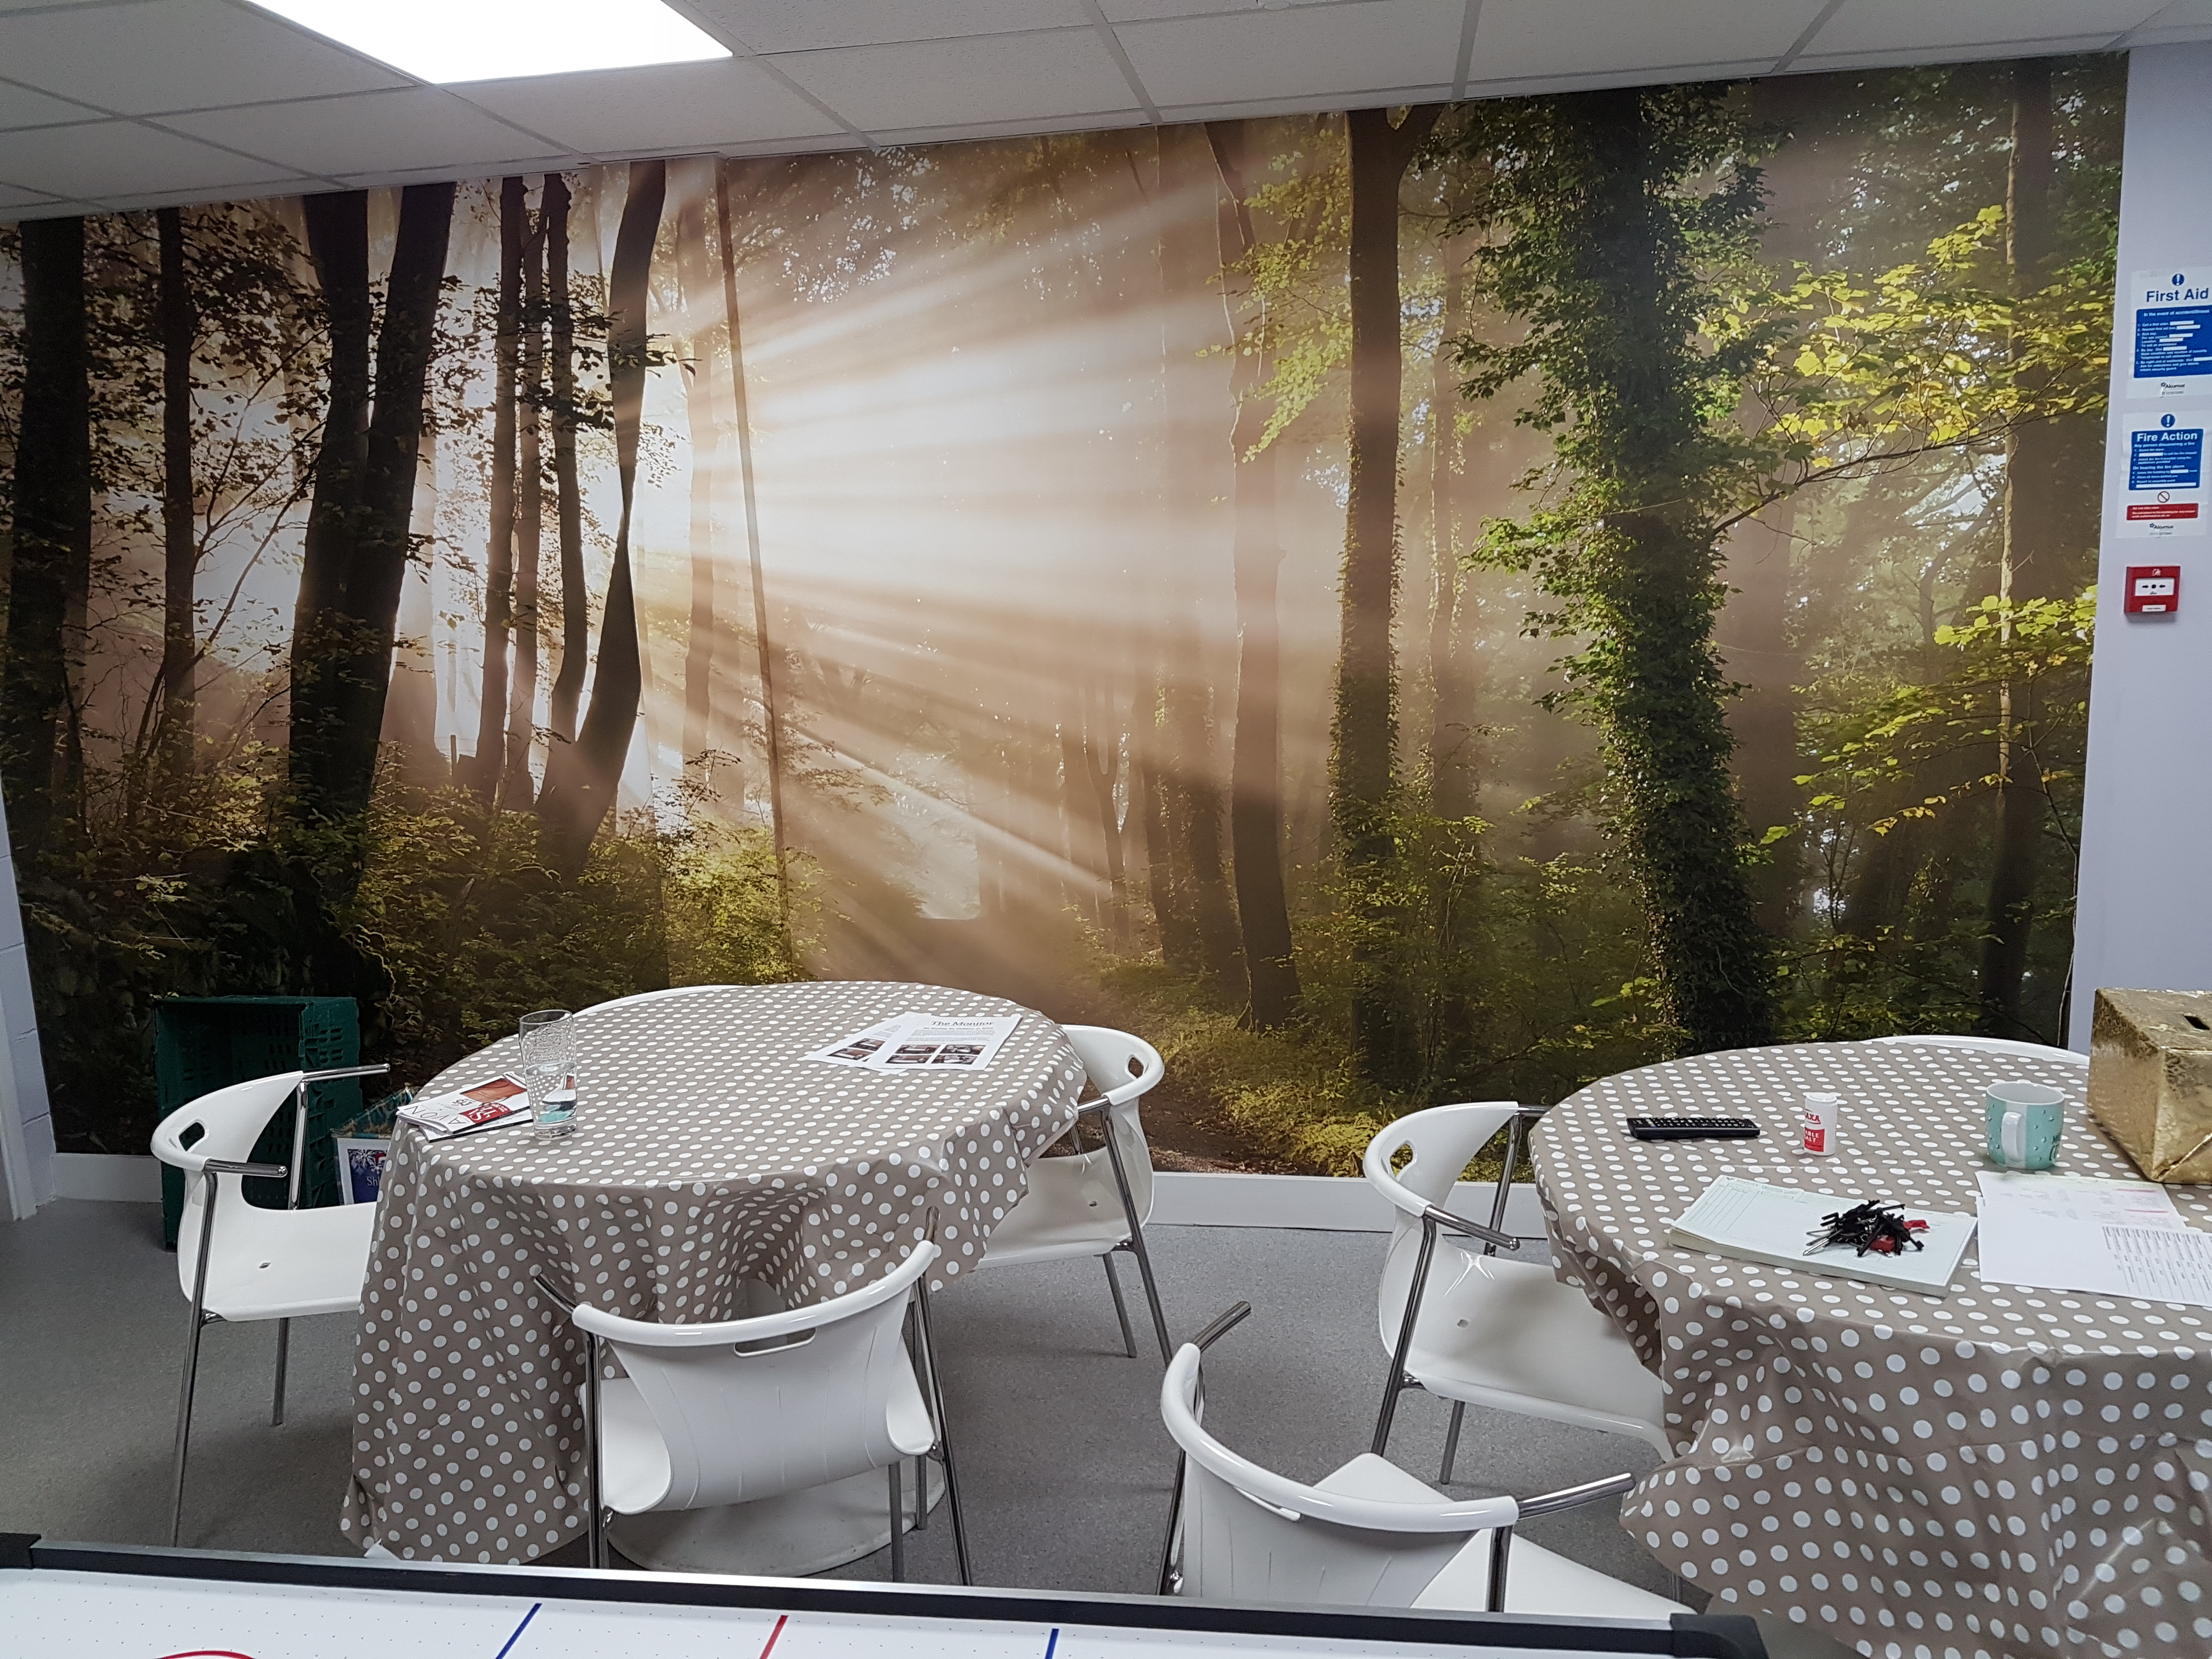 improving-the-working-envoirnment-keybury-office-keighley